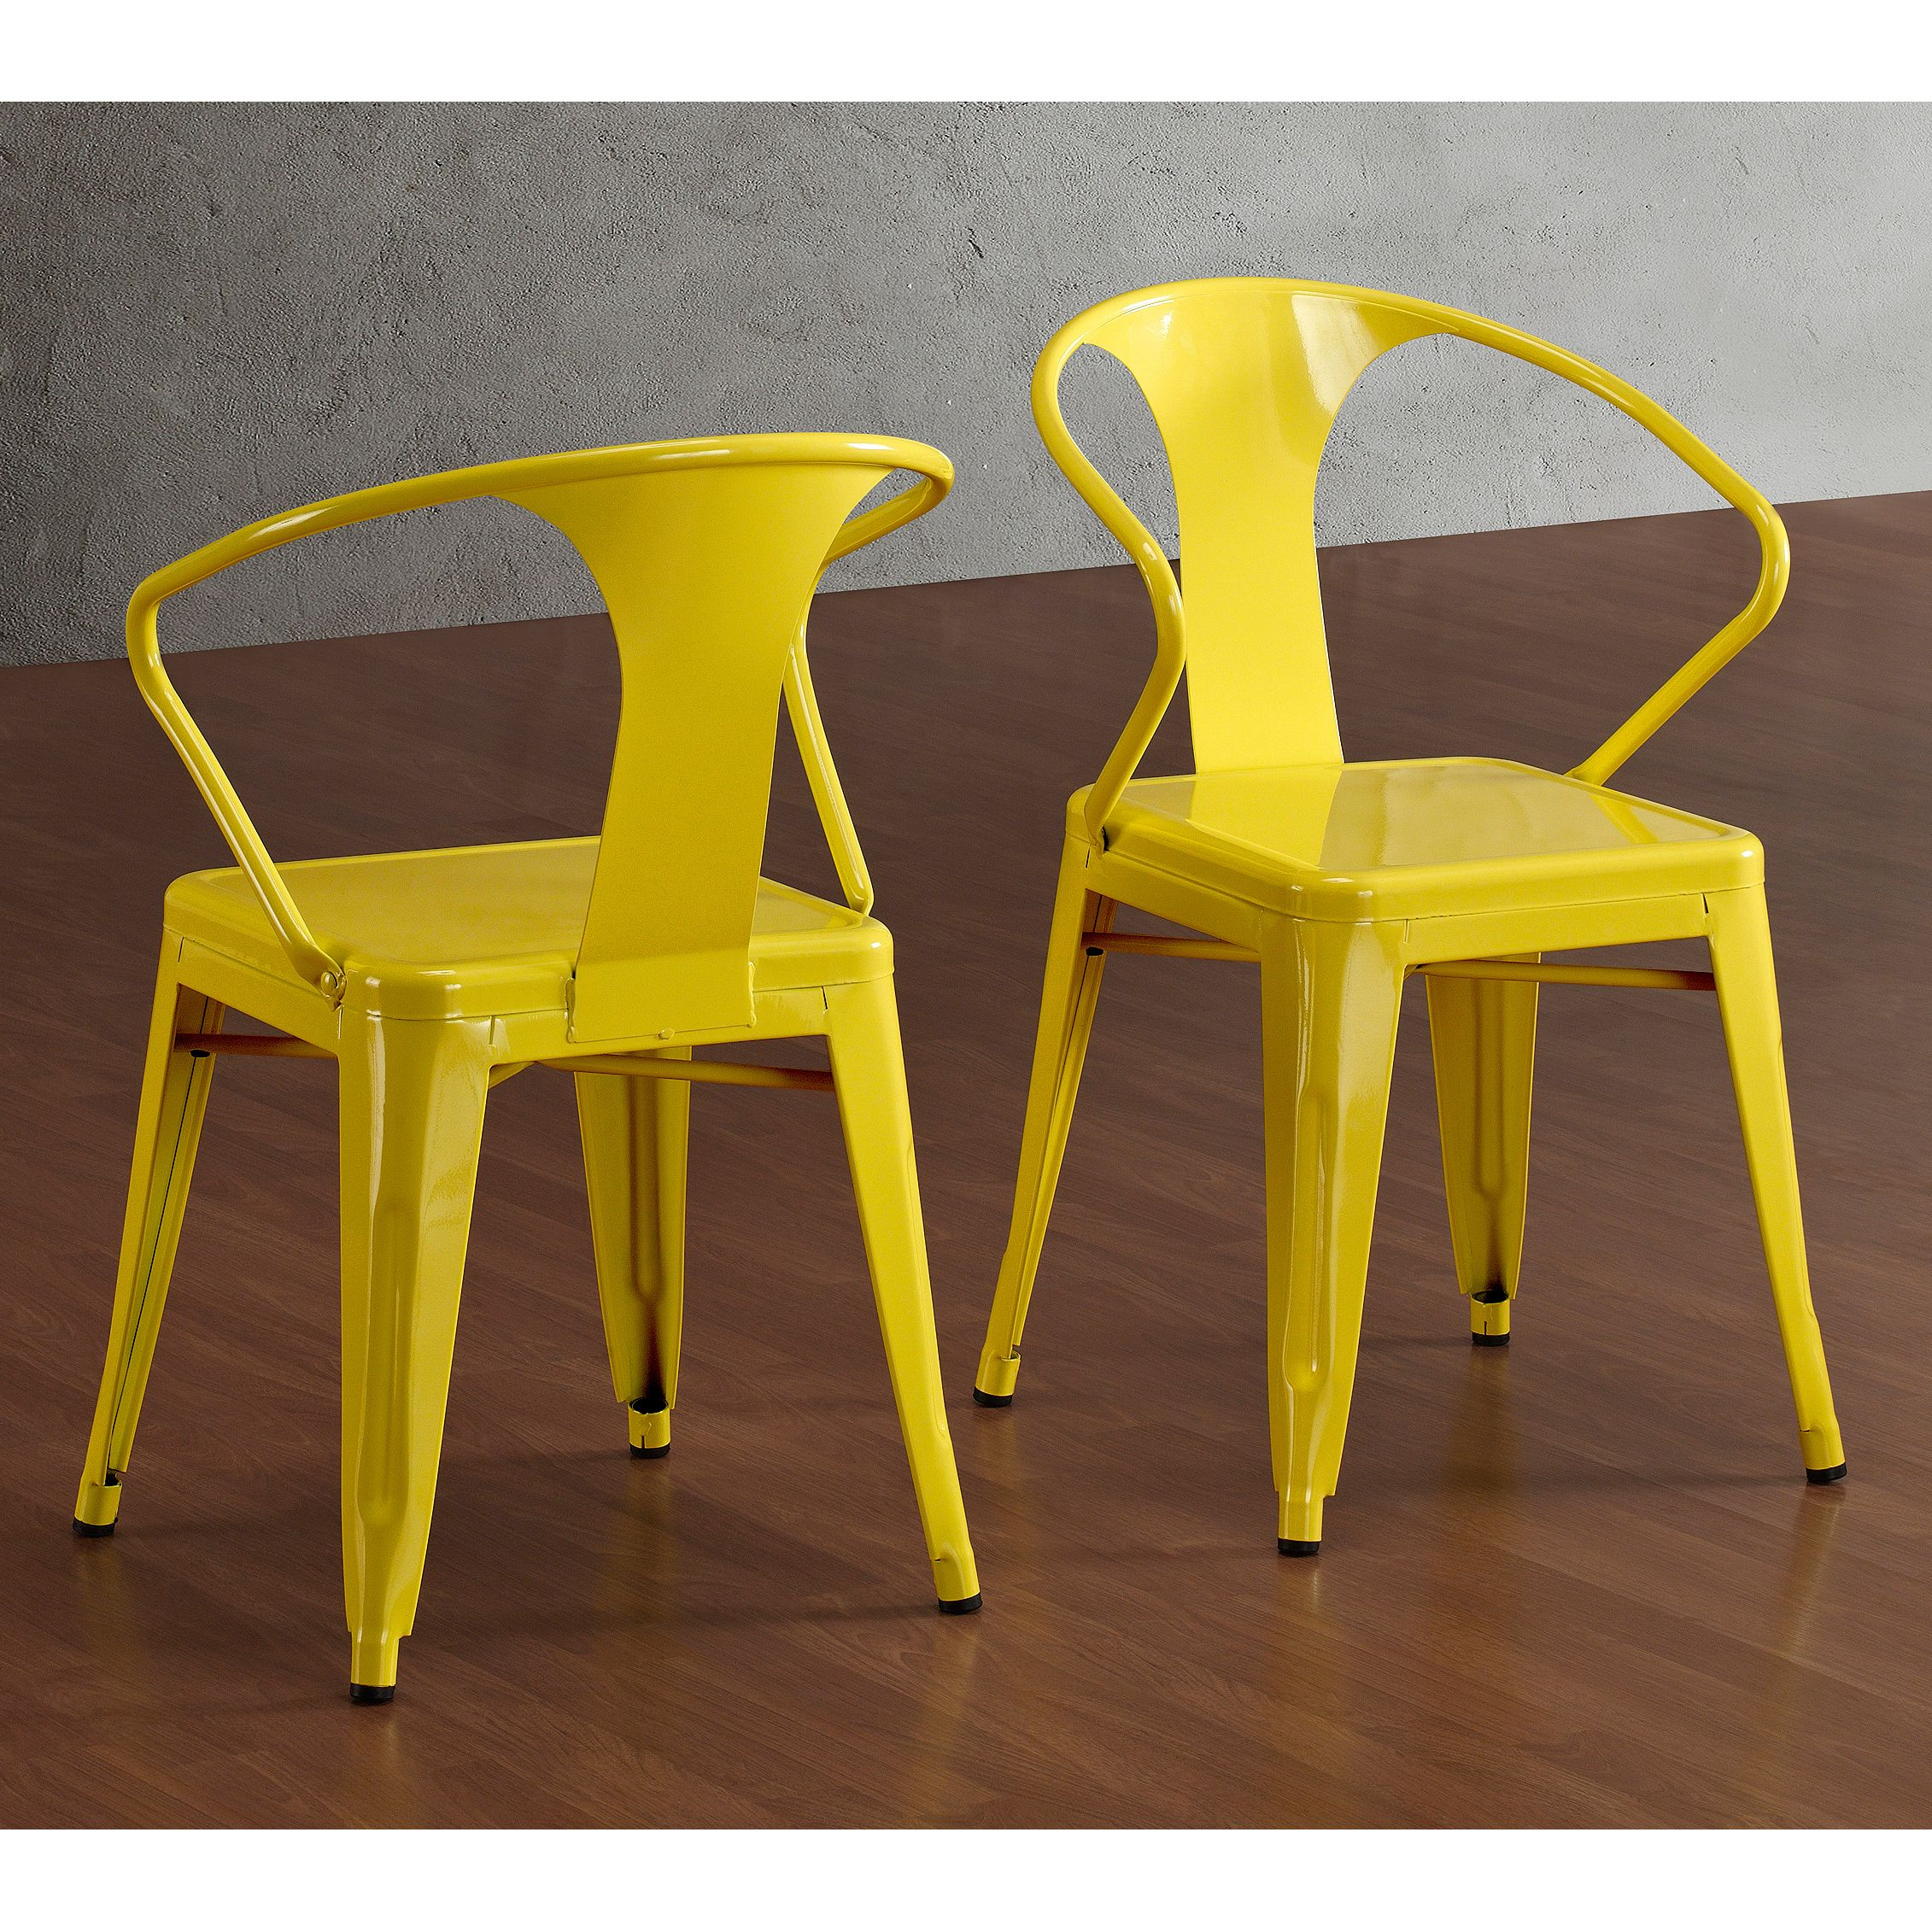 metal stacking chairs outdoor swing chair home bargains modern yellow for the wood claw foot table can stack and store extra 4 when leaf is out